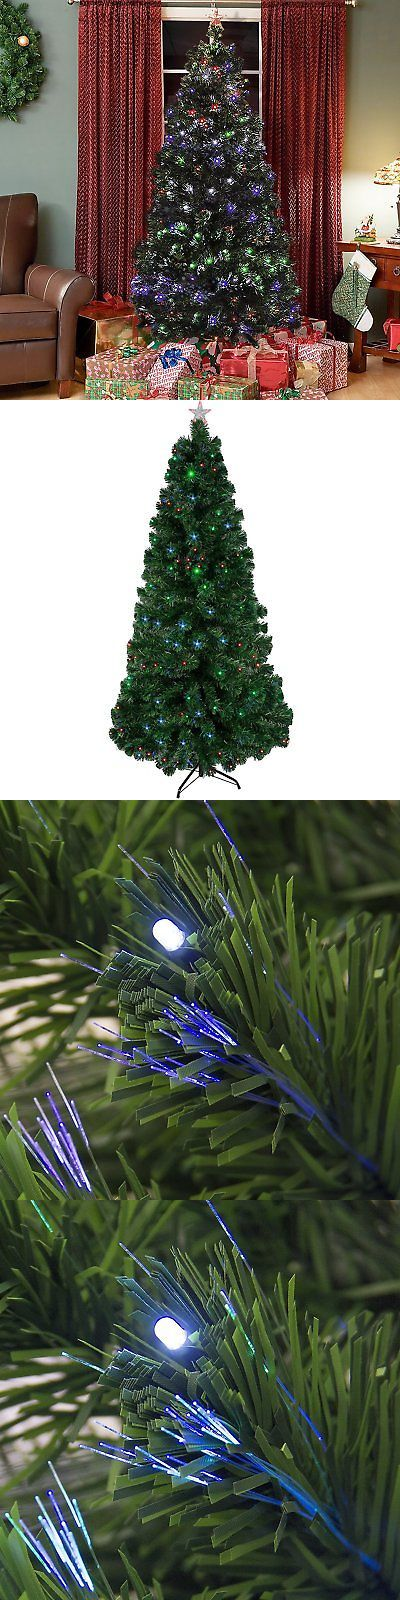 Artificial Christmas Trees 117414: Best Choice Products Pre-Lit Fiber Optic 7 Green Artificial Christmas Tree With -> BUY IT NOW ONLY: $92.02 on eBay!